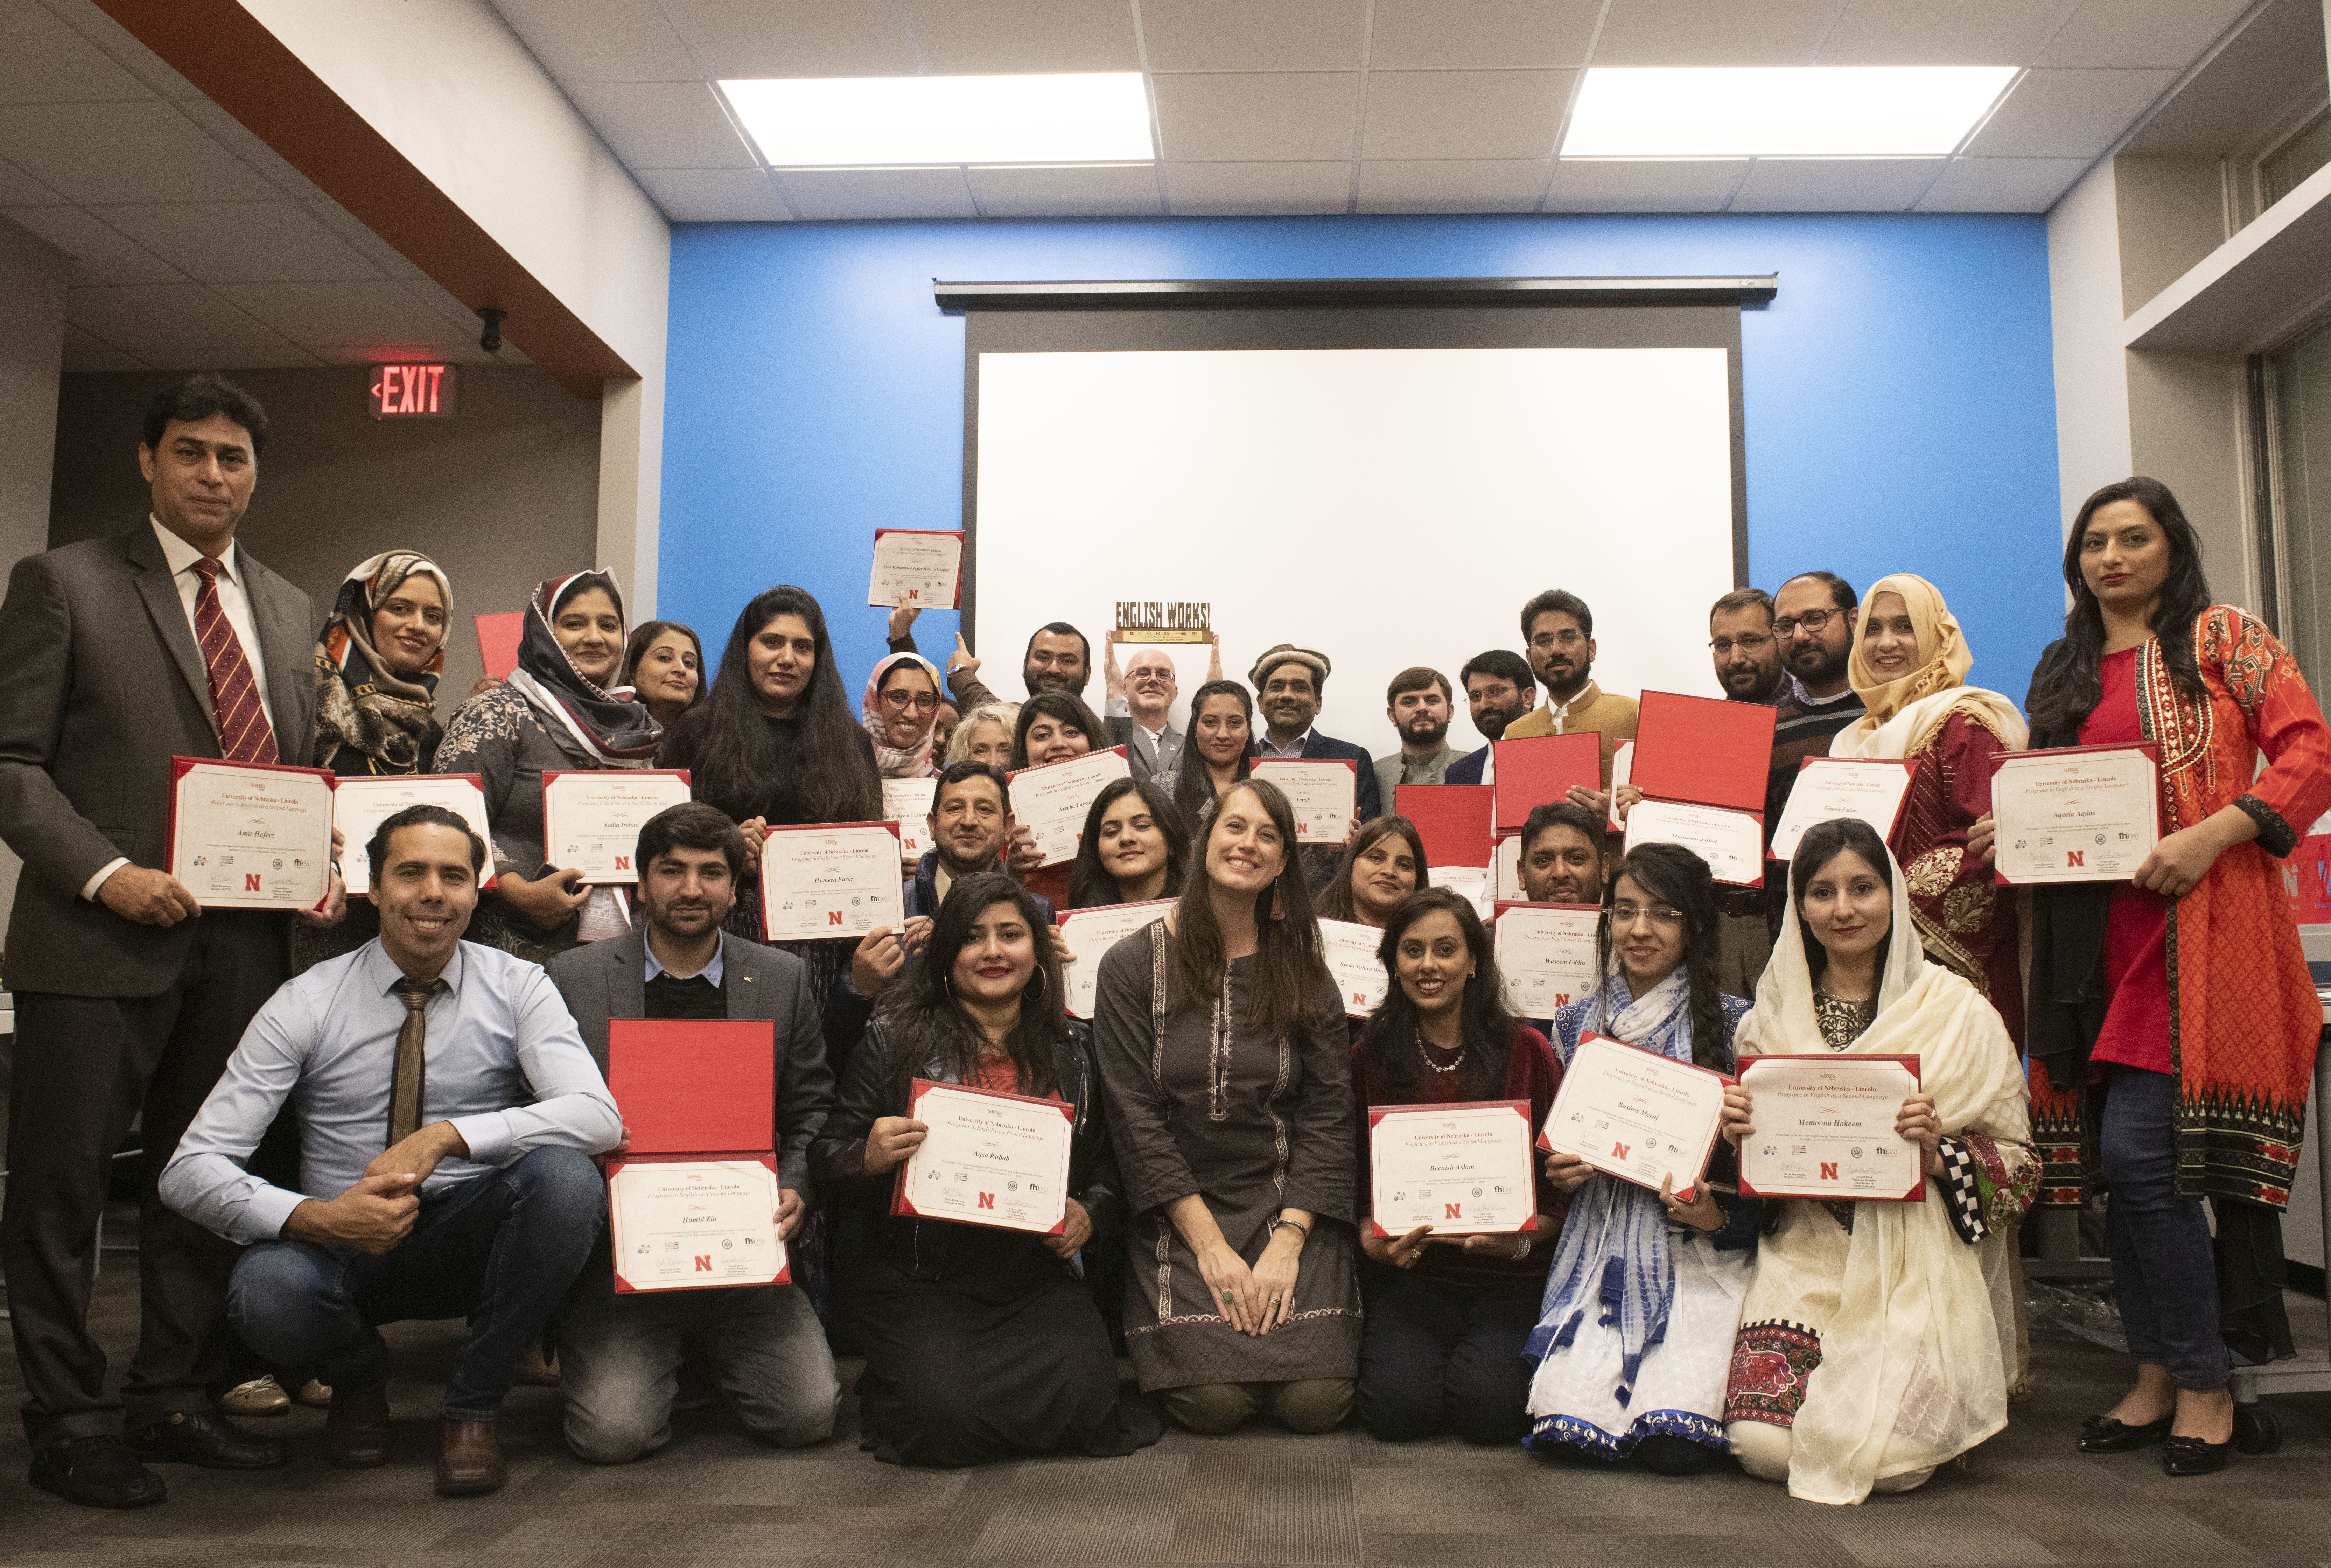 The Pakistani scholars from Nebraska's English Works! Program celebrate the completion of their two-week program at UNL.